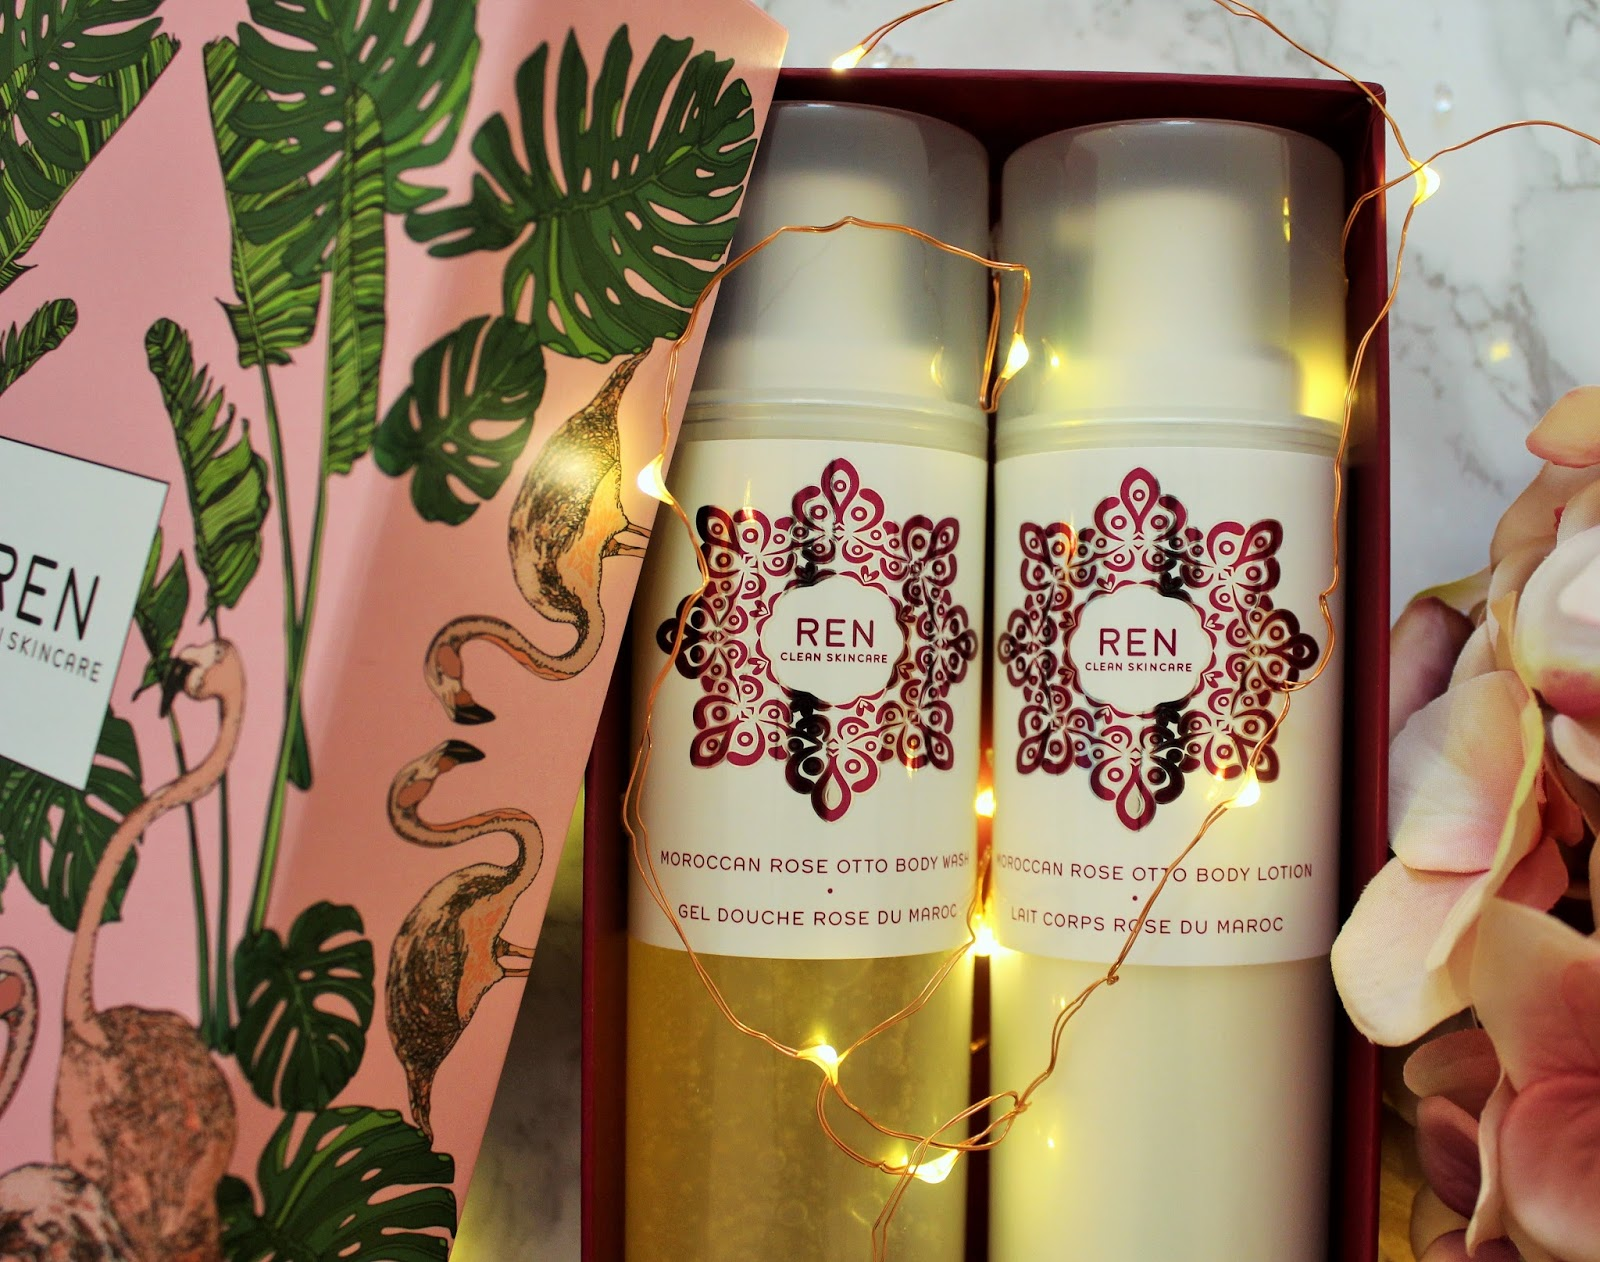 New In From Ren Clean Skincare - & Now To Sleep Pillow Spray Plus Christmas 2017 Gifts - 1